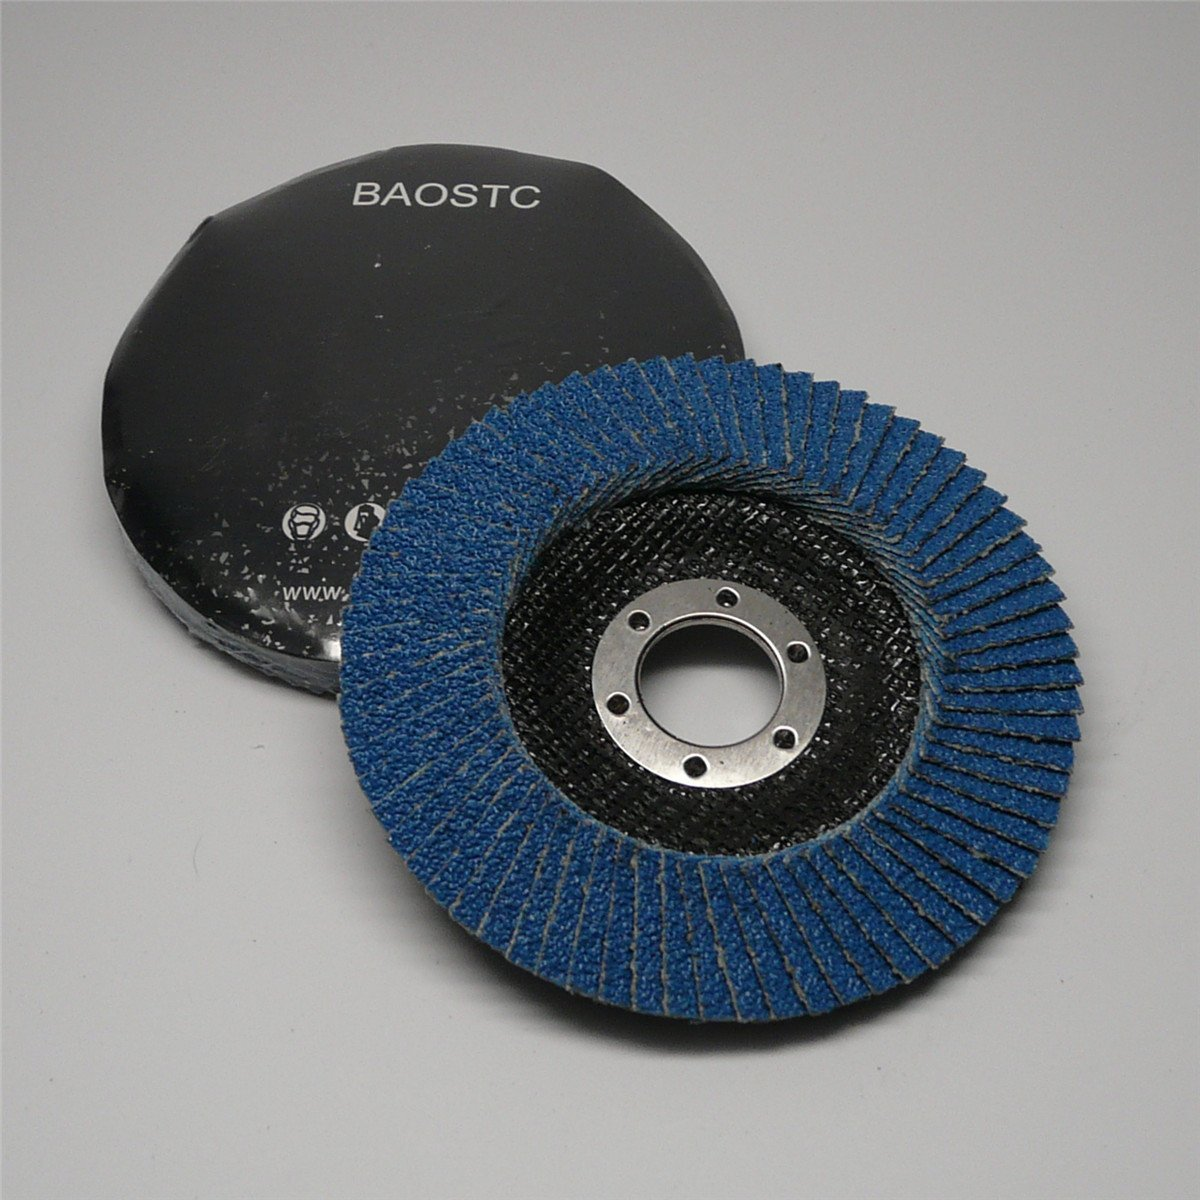 BAOSTC 4 ½ Inch P80 Zirconia oxide flap disc for angle grinder